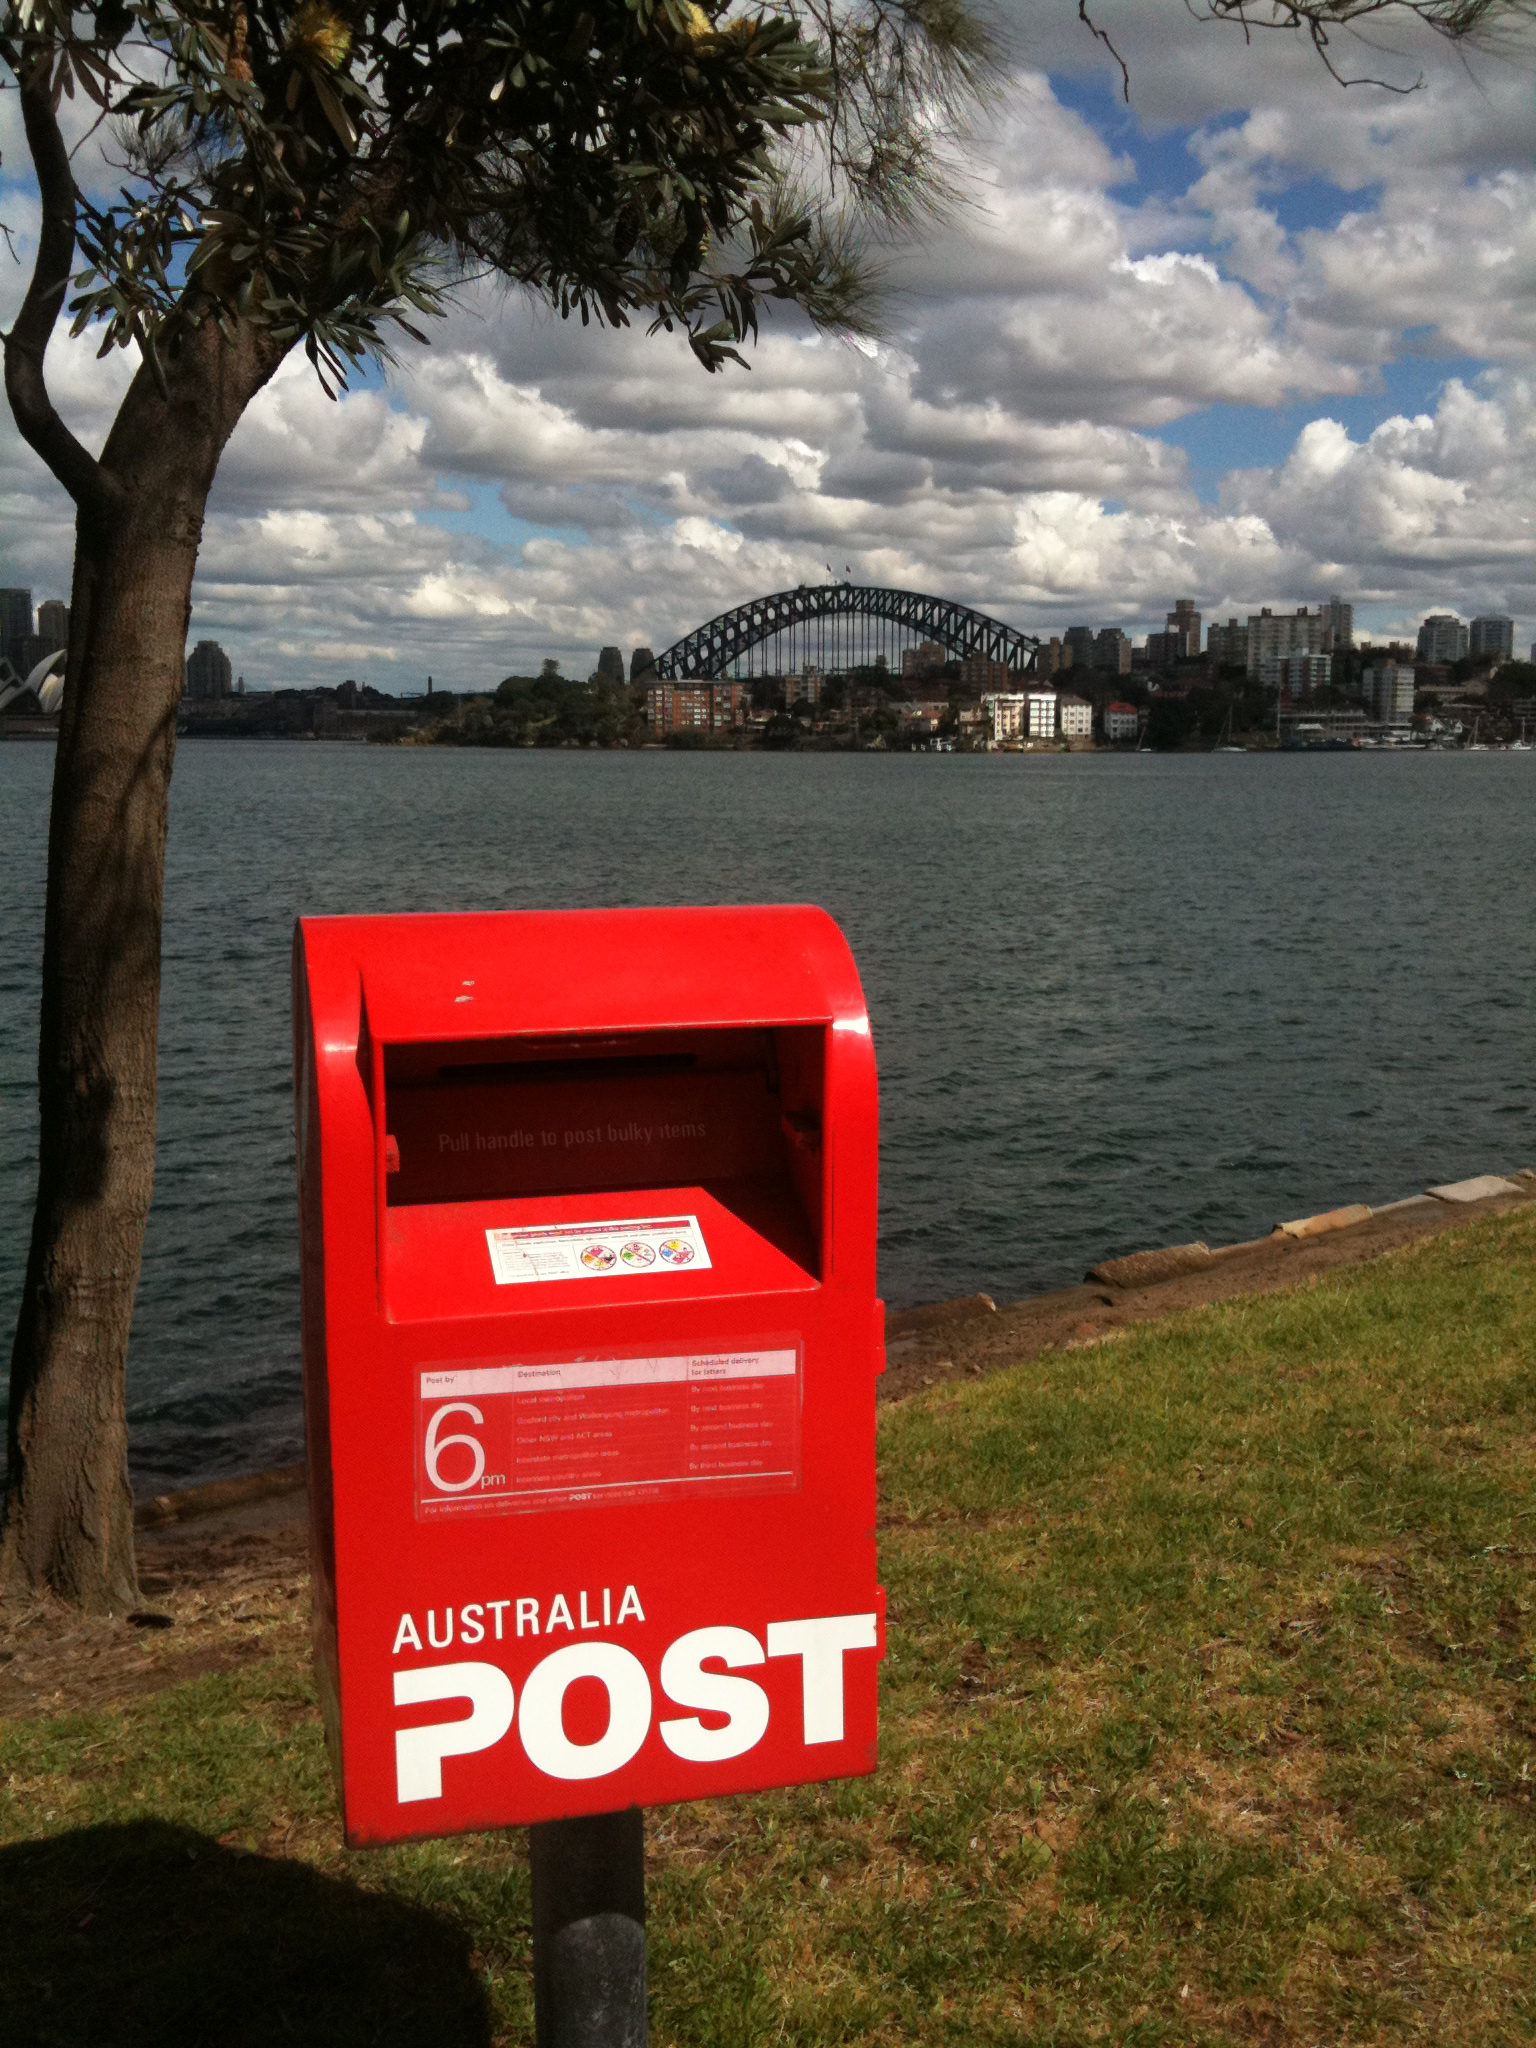 Why bother with a postcard? The view is enough...